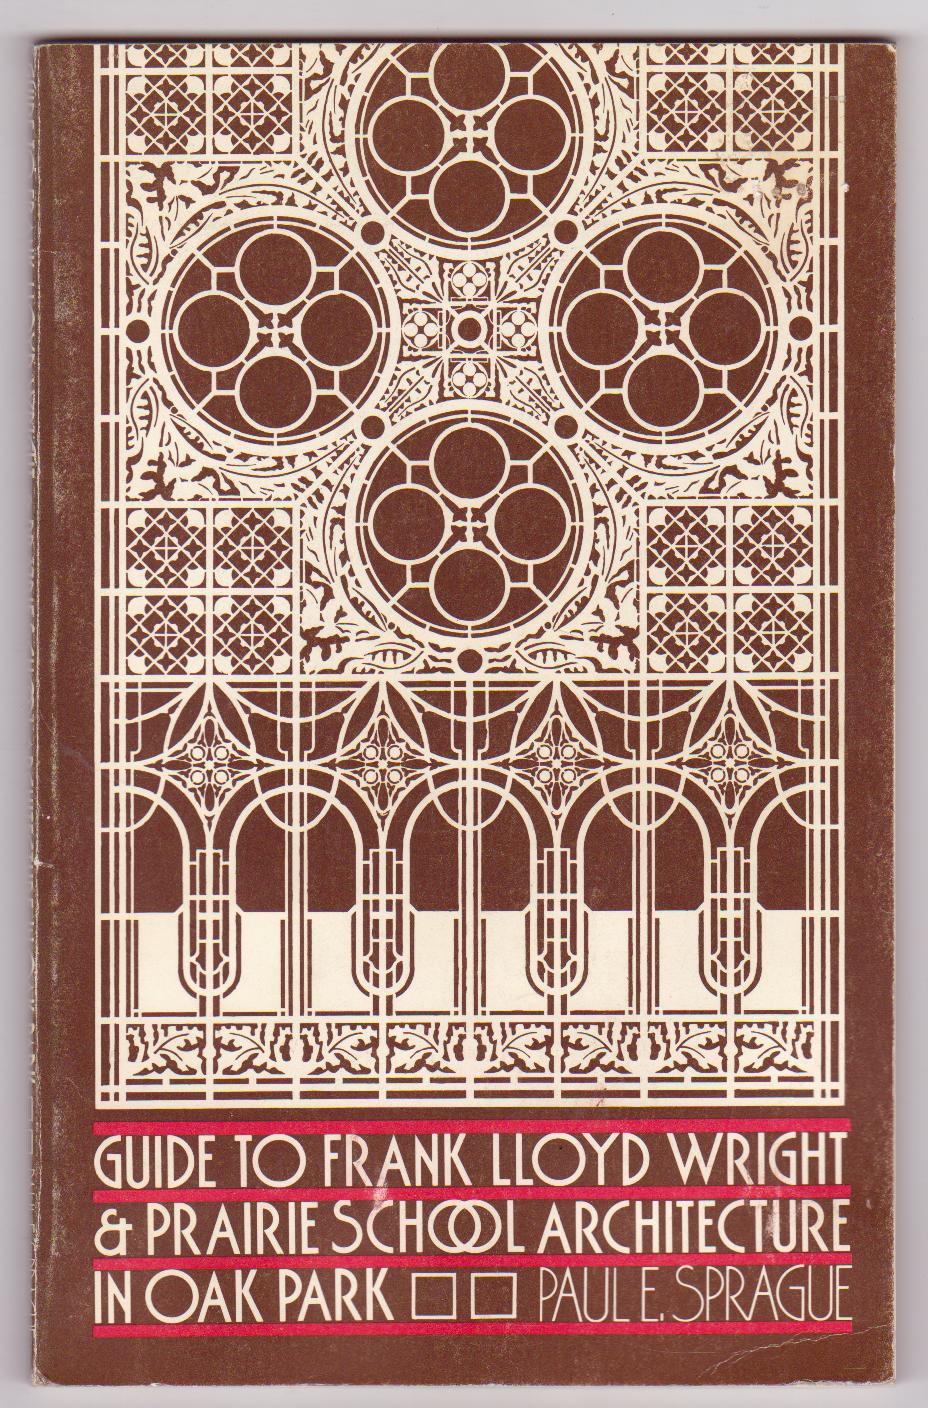 Image for Guide to Frank Lloyd Wright & Prairie School Architecture in Oak Park